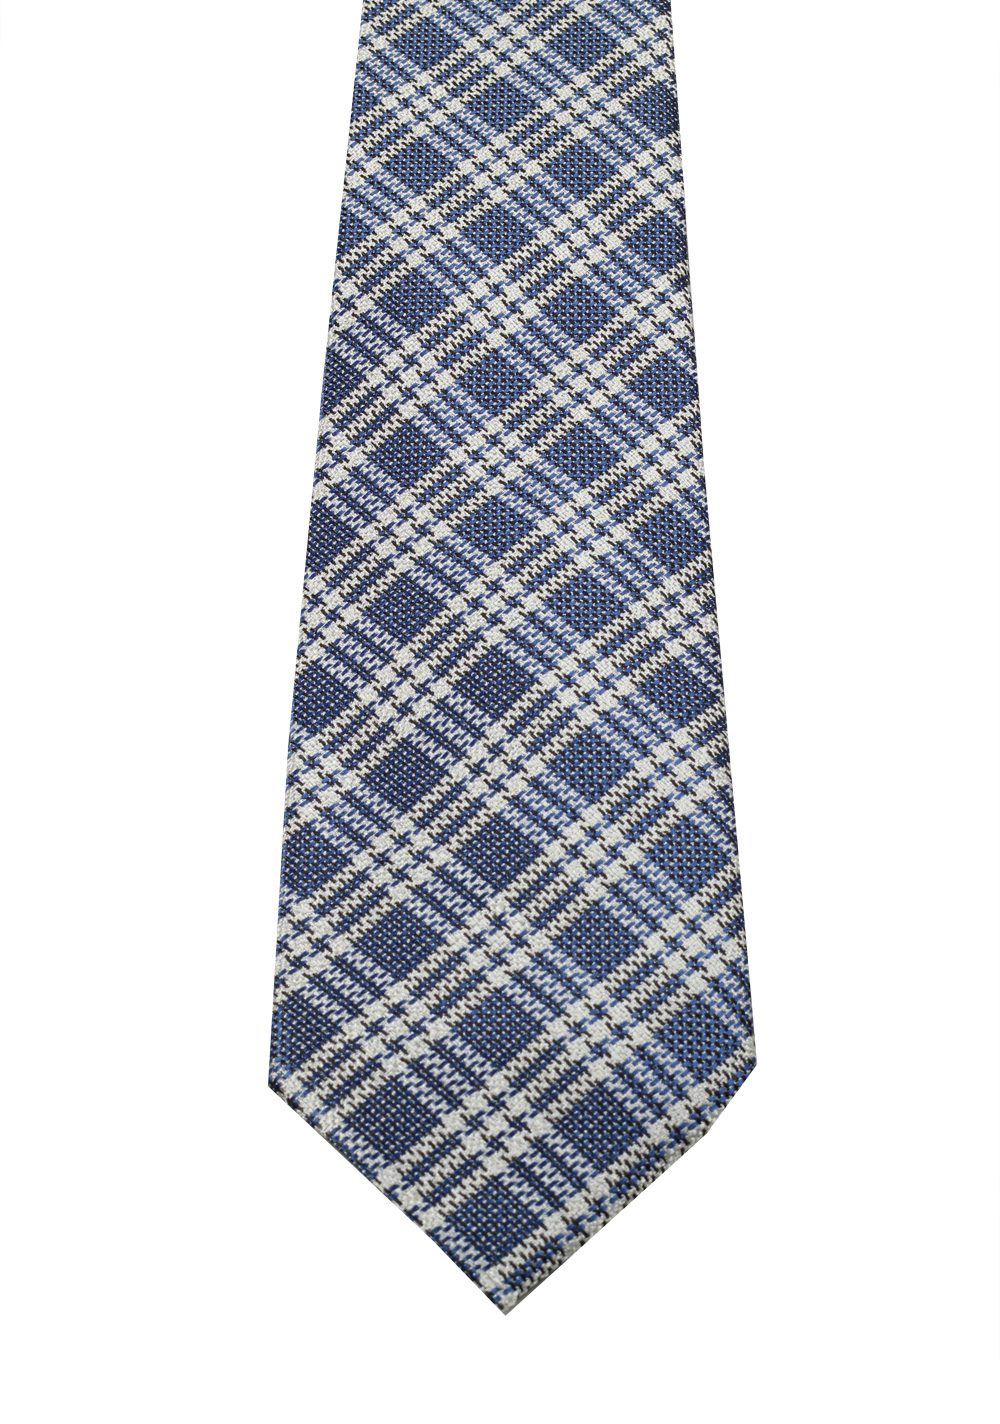 TOM FORD Checked Blue Tie In Silk | Costume Limité